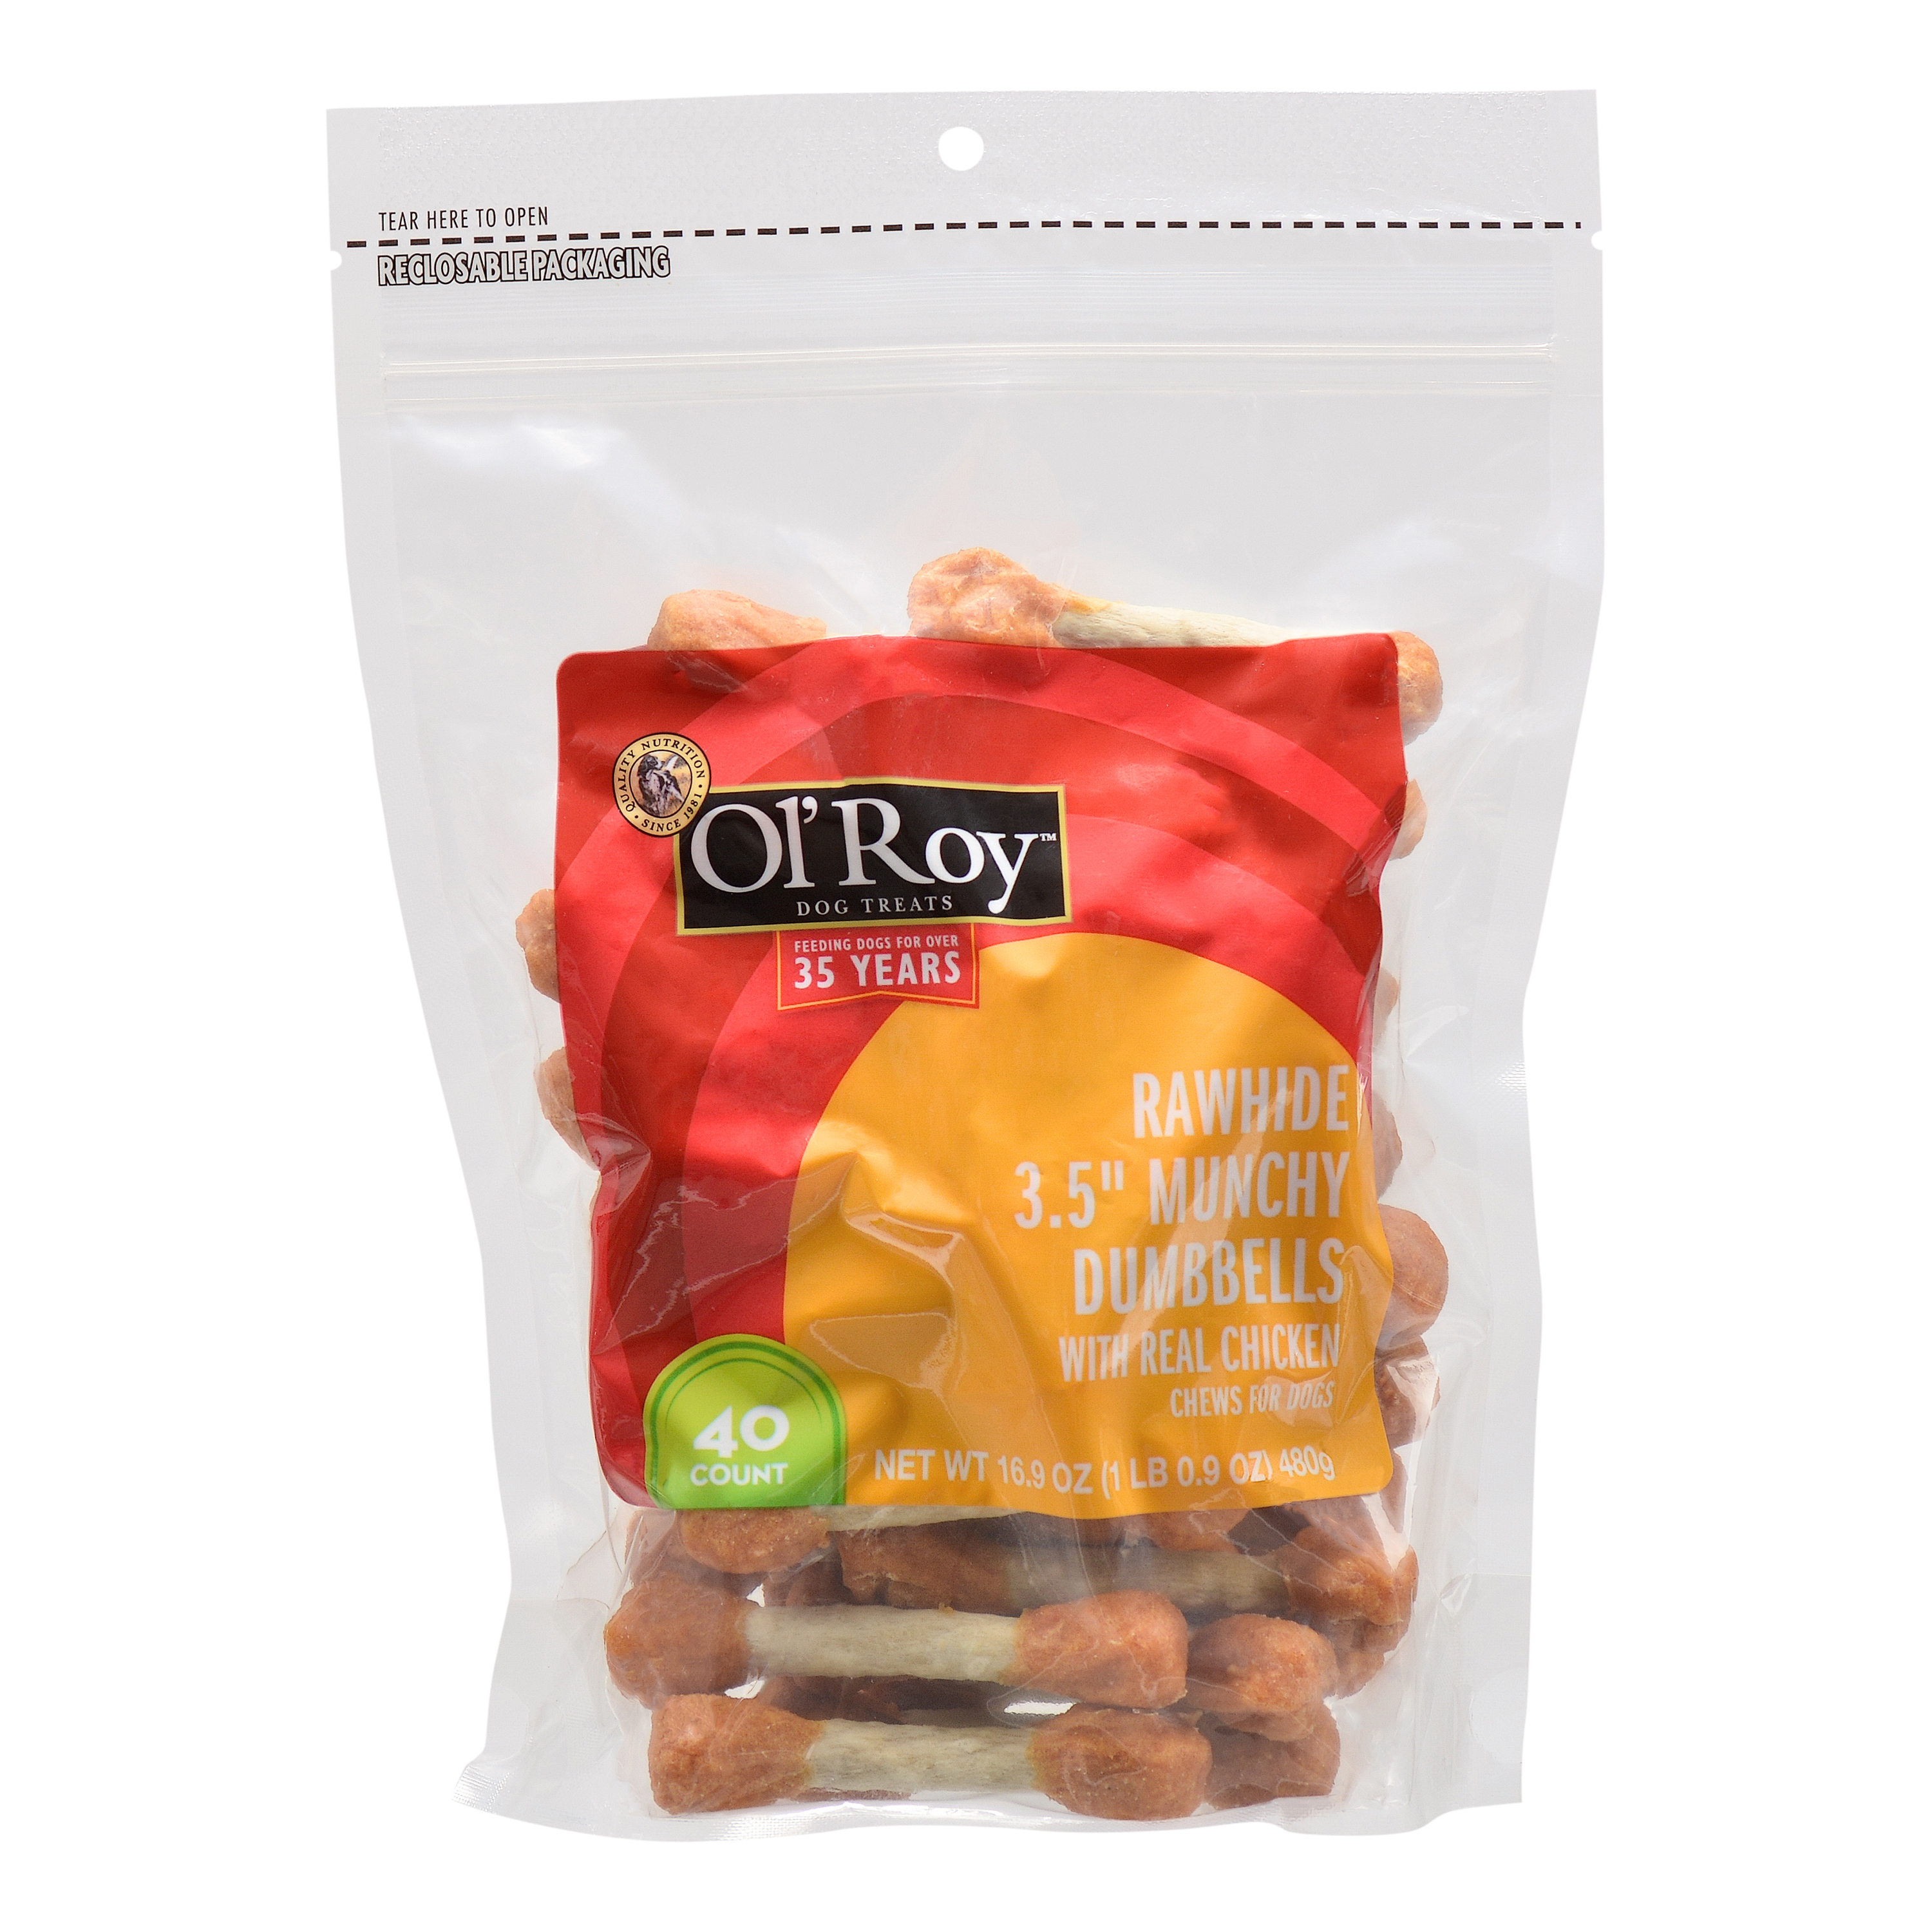 Ol' Roy Dog Treats Munchy Rawhide Chicken Dumbbells, 40 Count